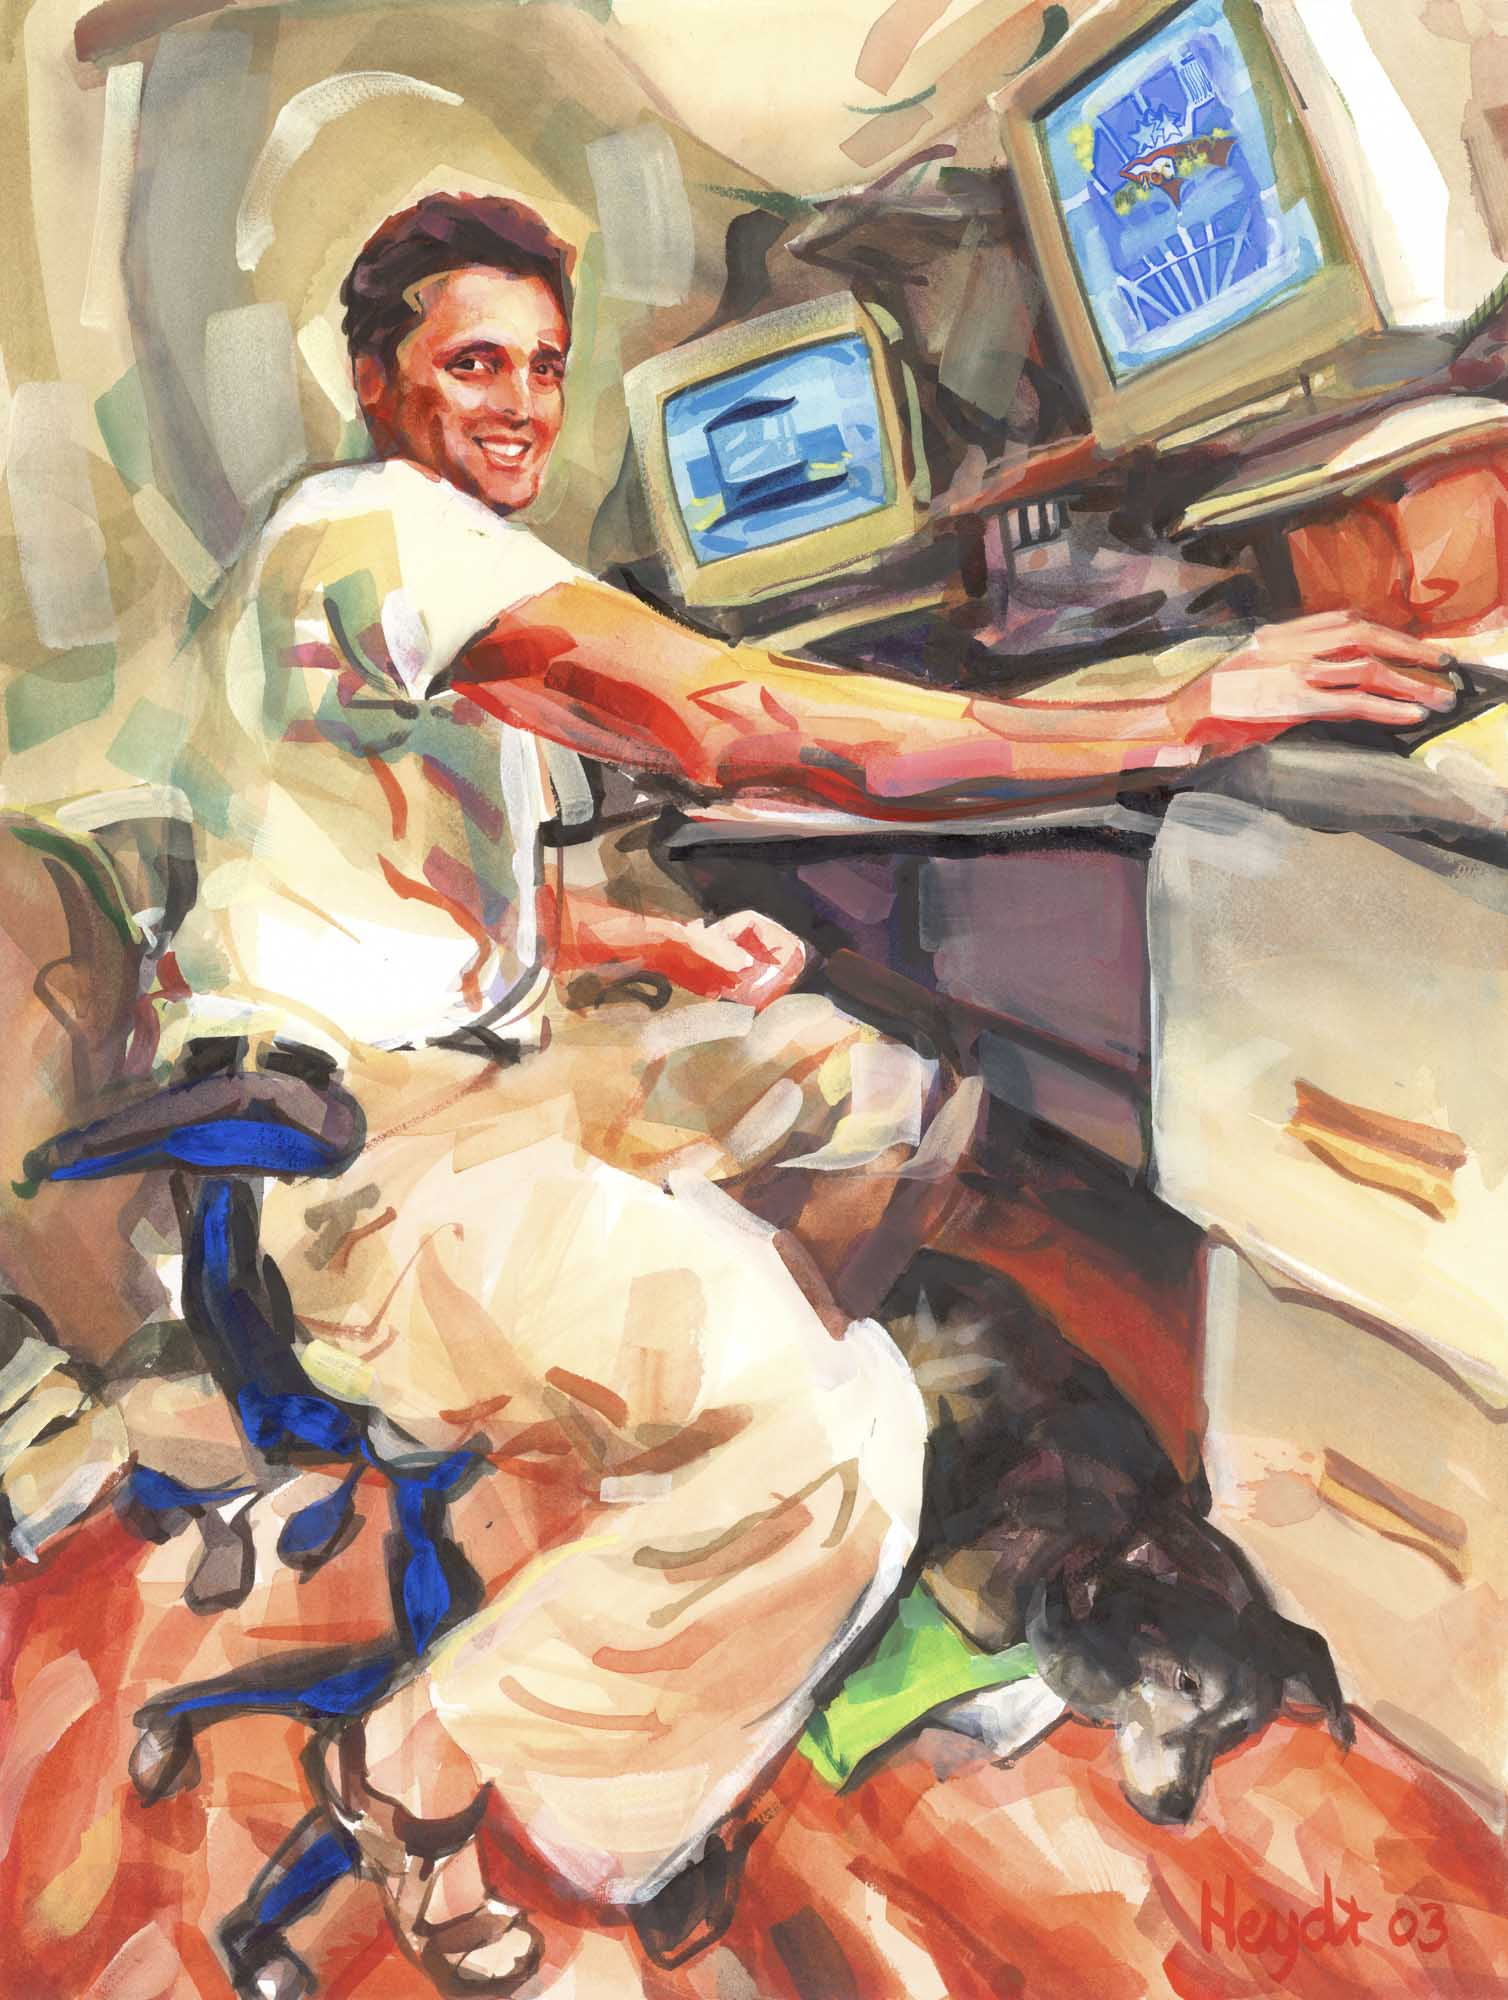 man with computers.jpg